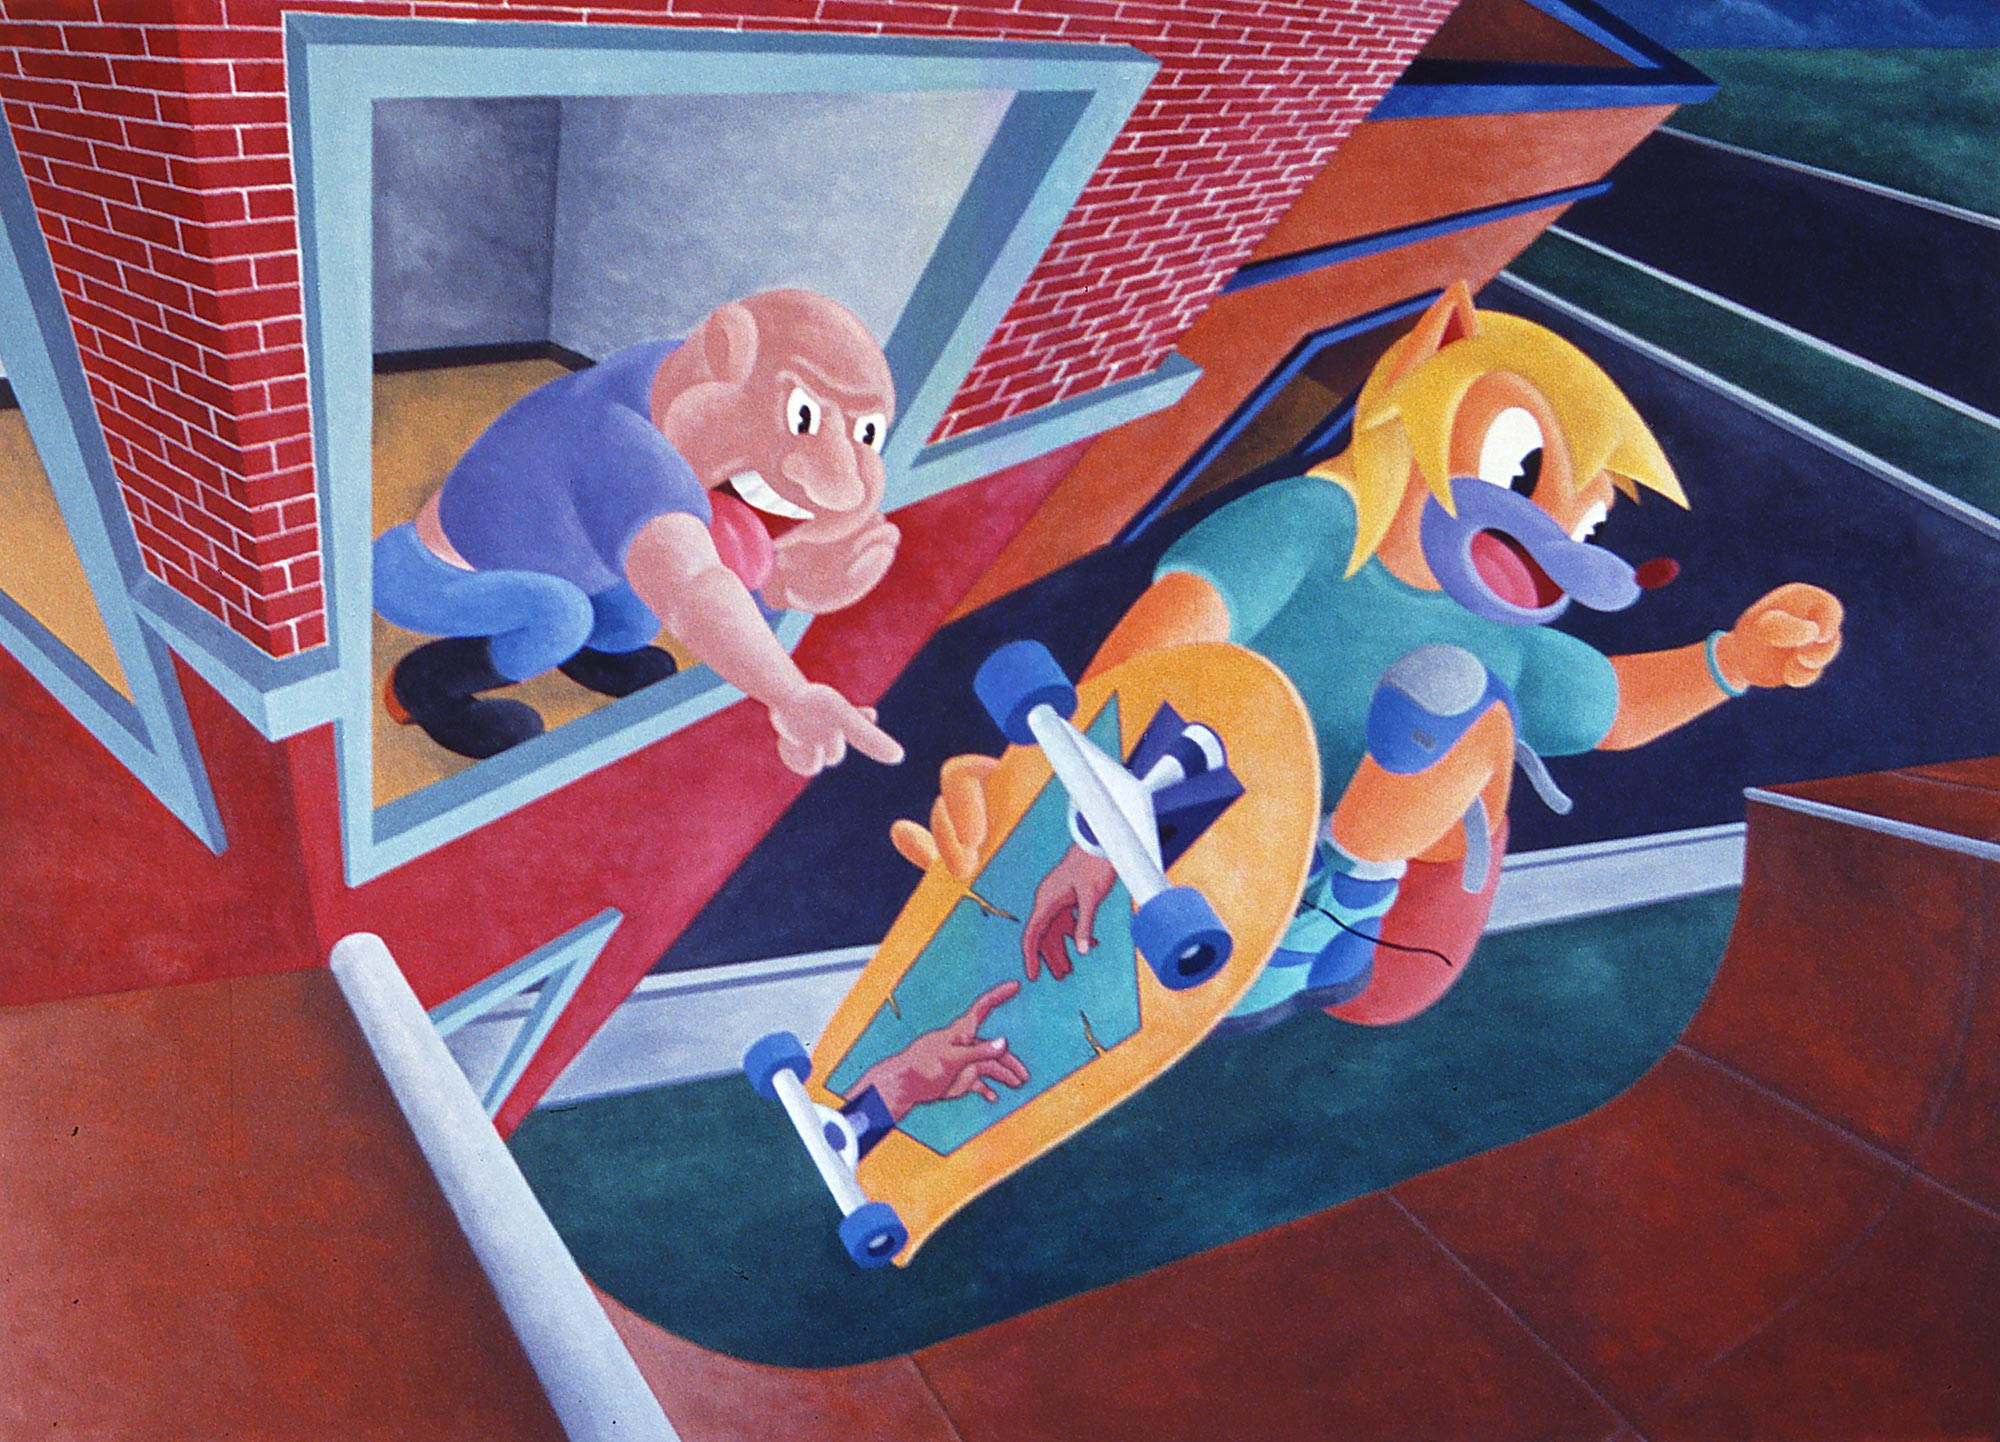 Catching Air, 1991